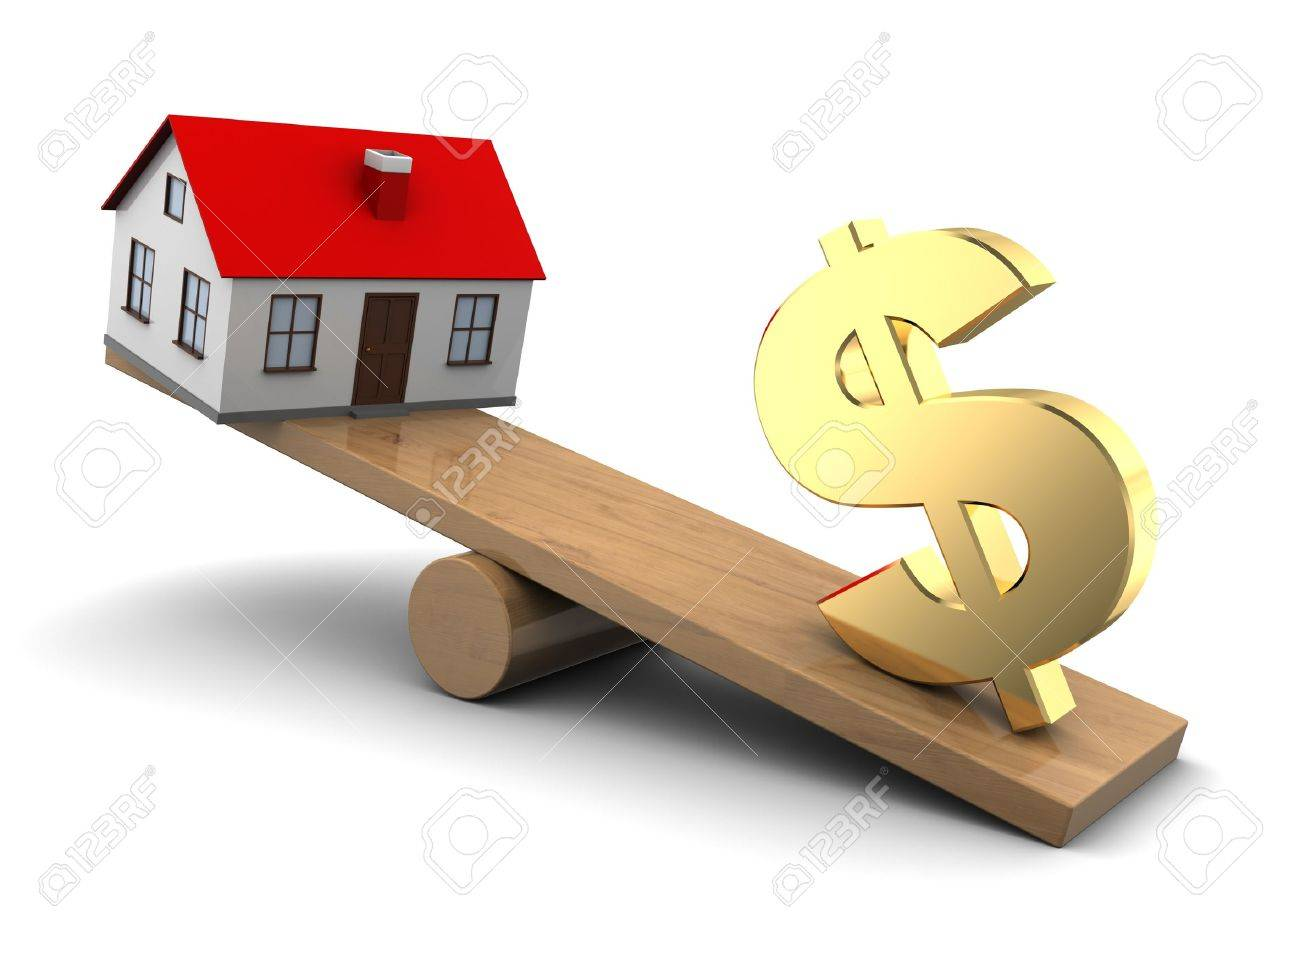 abstract 3d illustration of house and dollar seesaw - 19241716